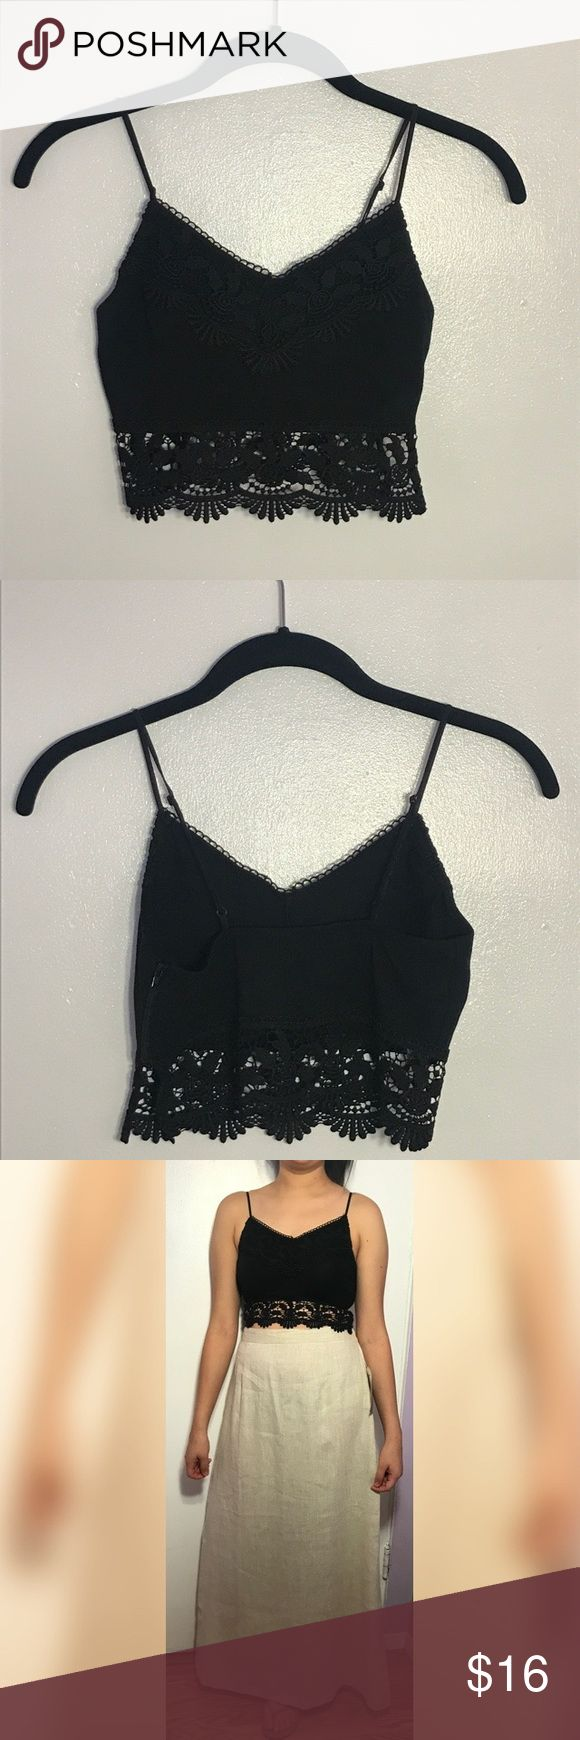 Top Sop Crochet Rib Bralet.  ..... Crochet Rib Bralet from Top Shop ...Hello PoshMark community, I'm so happy to share all the styles that I love Personally and that I would like to share with whomever would love my styles of clothing !!! Thank you all for the Love !! Topshop Tops